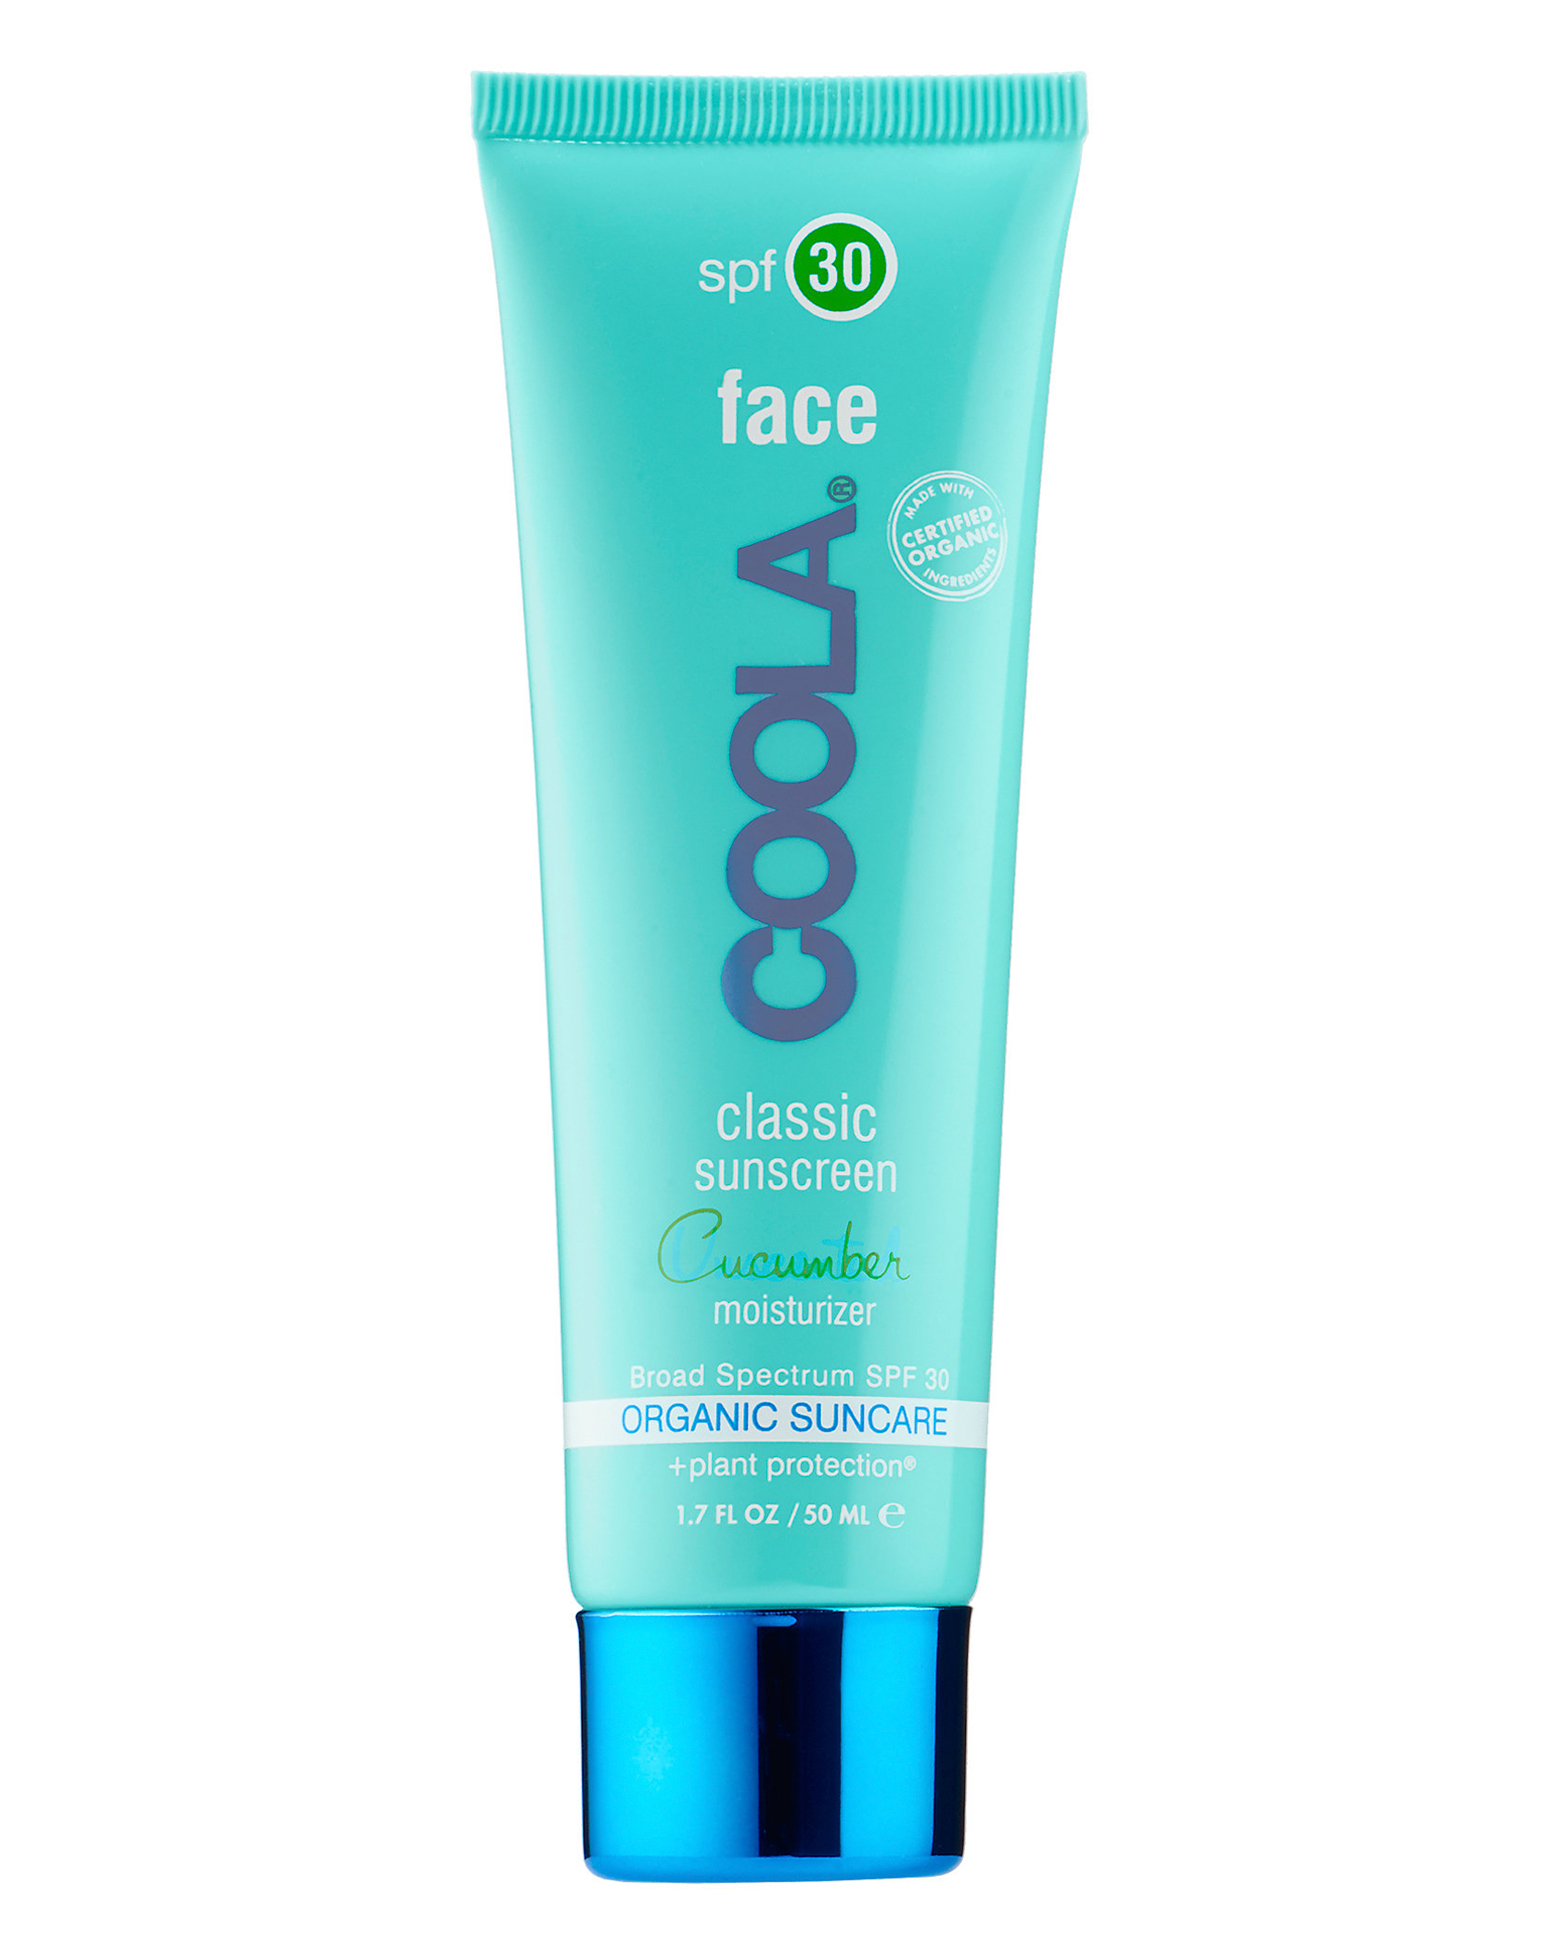 coo014_coola_classiccucumberfacespf30_50ml_1_1560x1960-5bb2a.jpg